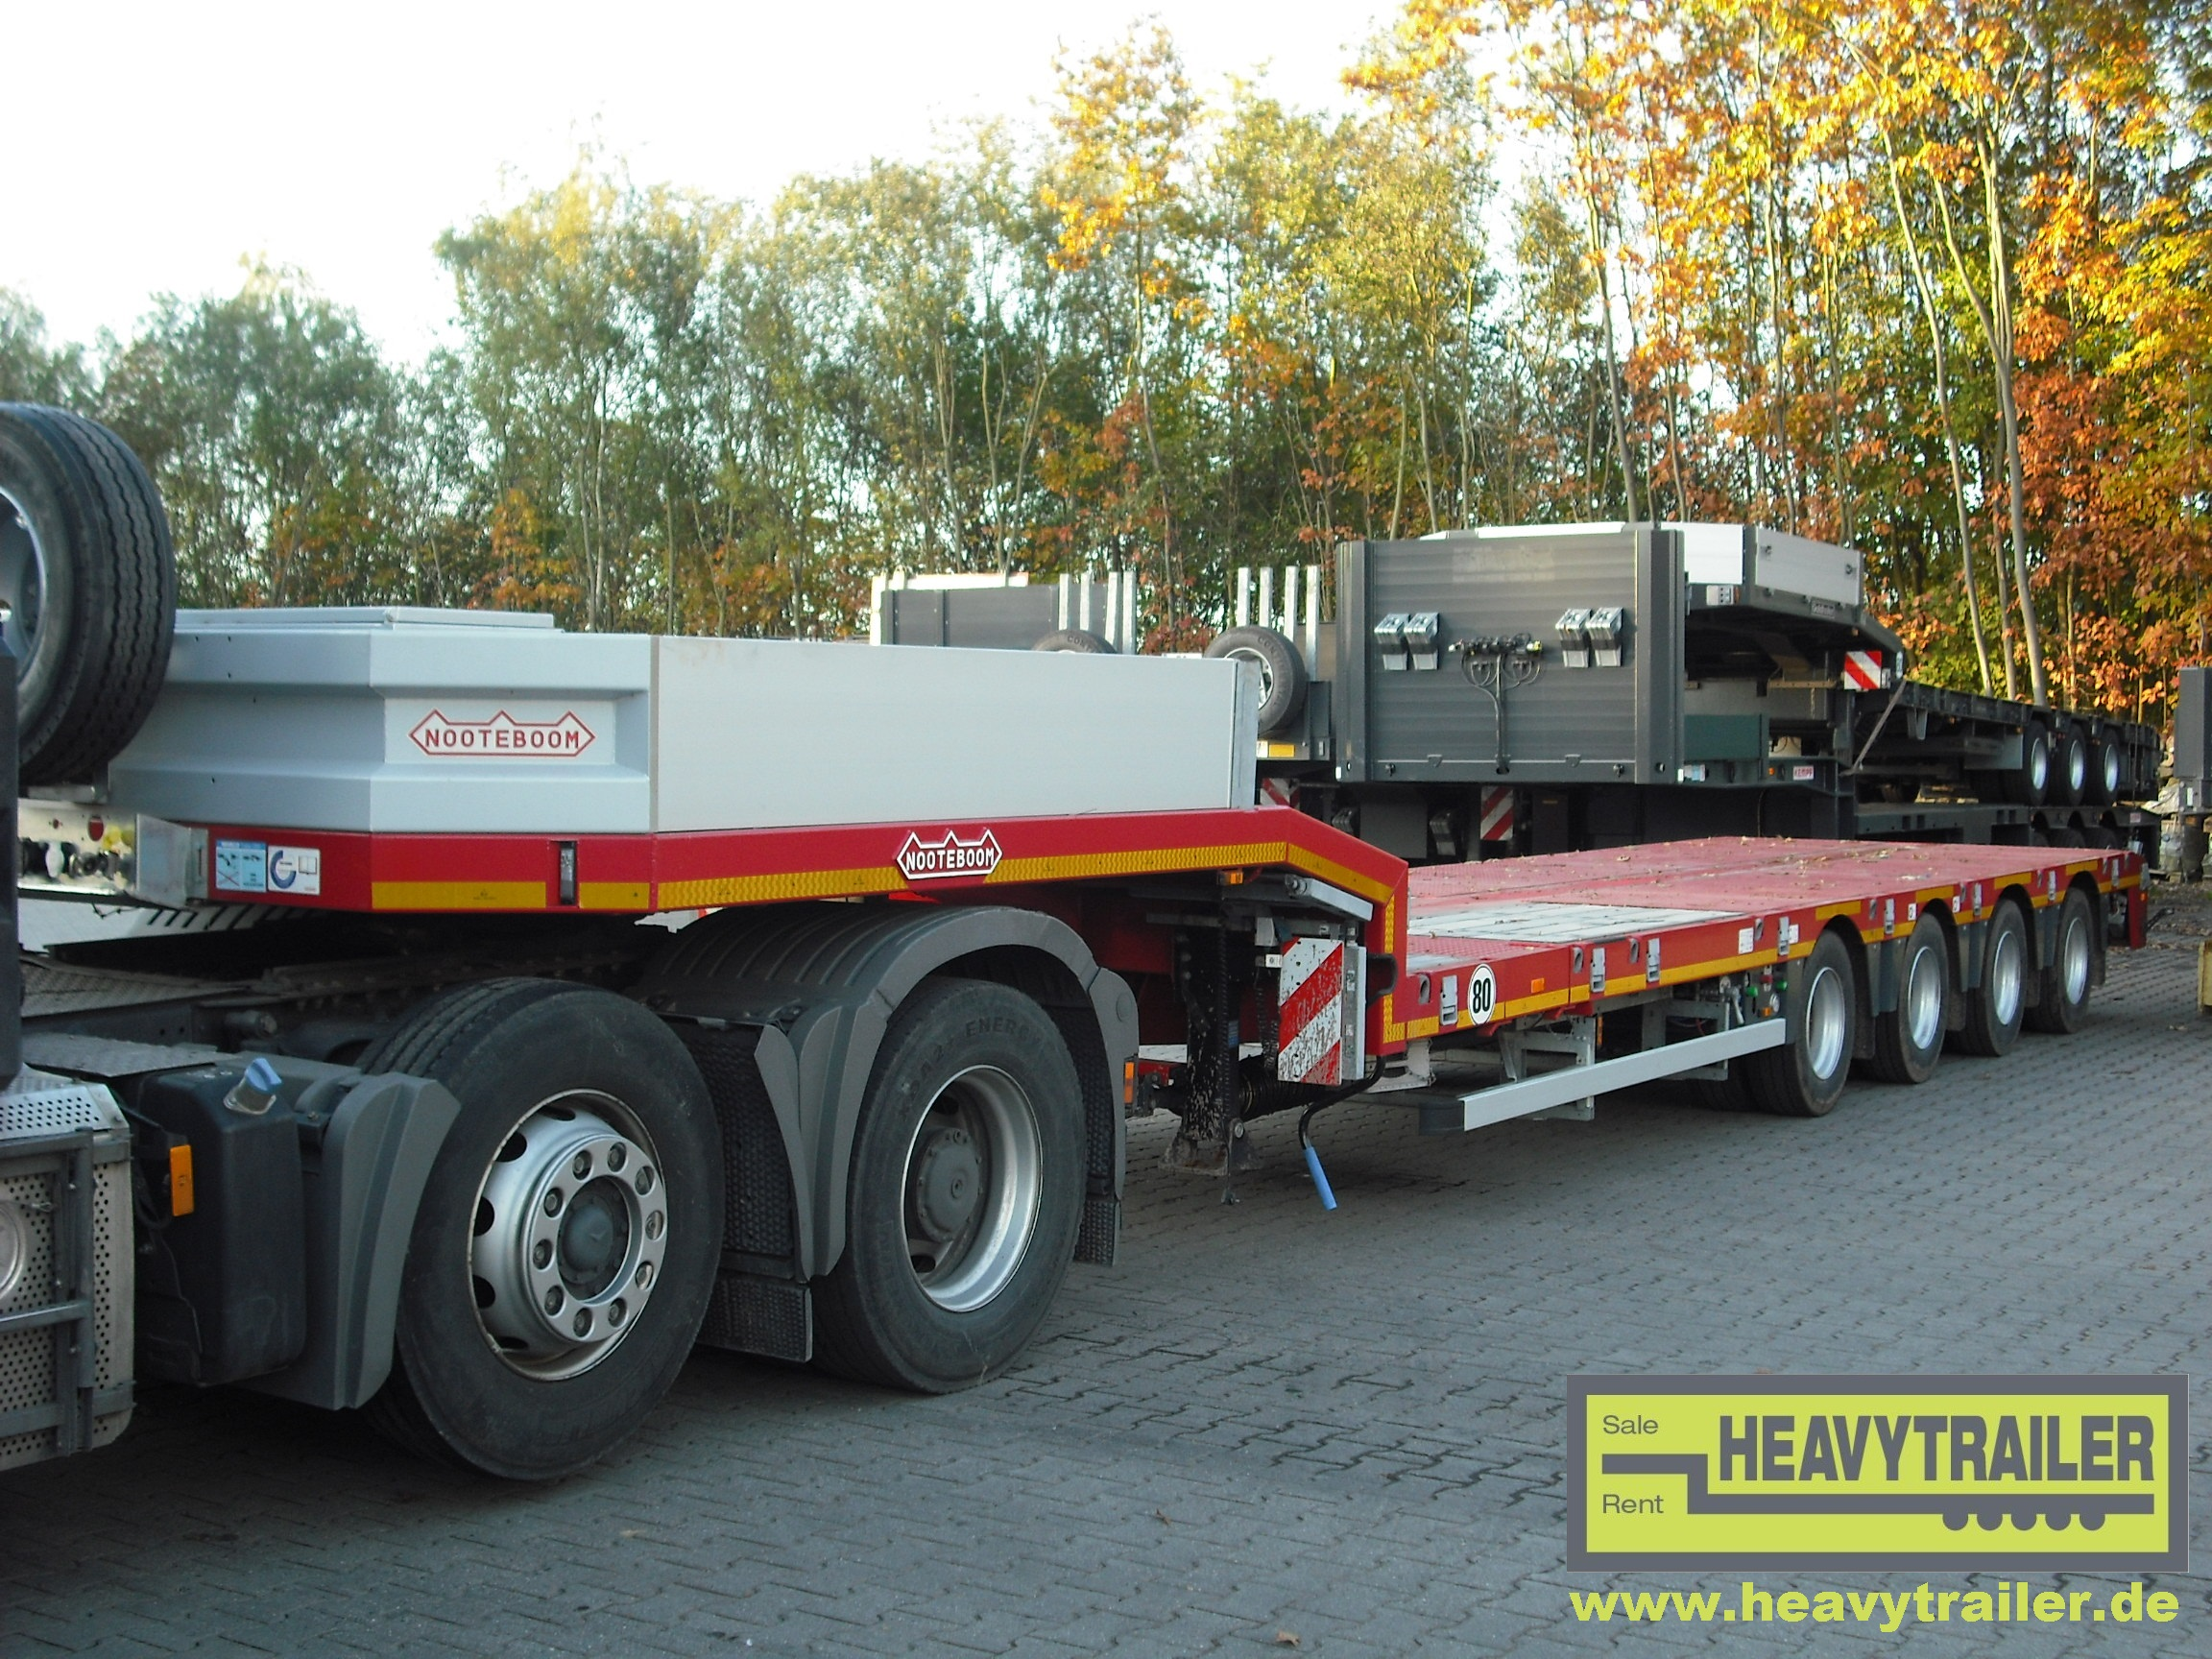 Nooteboom OSDS-58-04V (4-axle-semi-trailer)